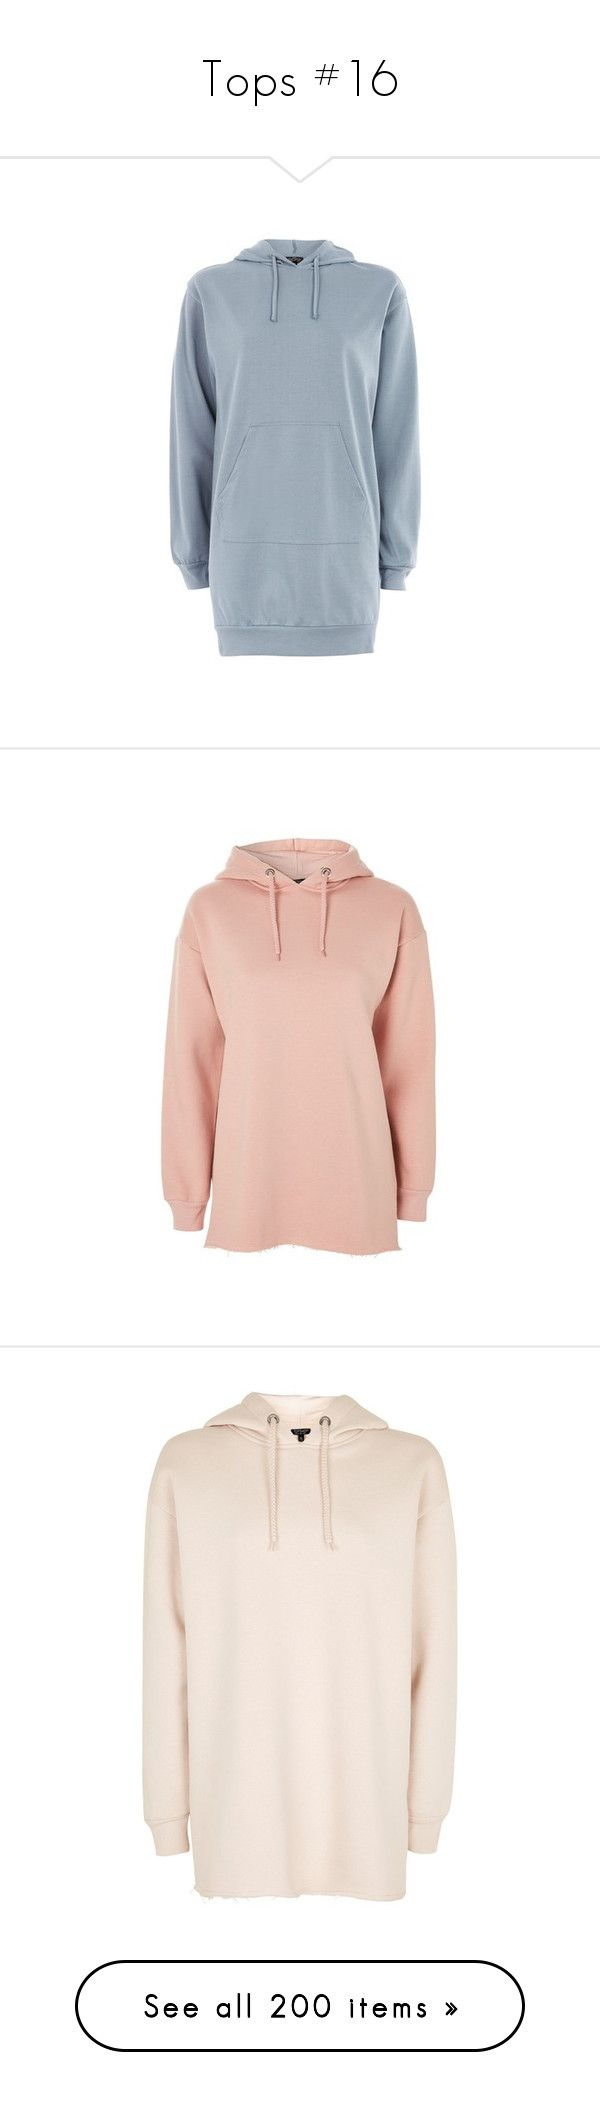 """""""Tops #16"""" by andriana-aaa ❤ liked on Polyvore featuring tops, hoodies, blue, cotton hoodie, topshop tops, petite hoodies, cotton hoodies, oversized hoodie, rose and hoodie top"""